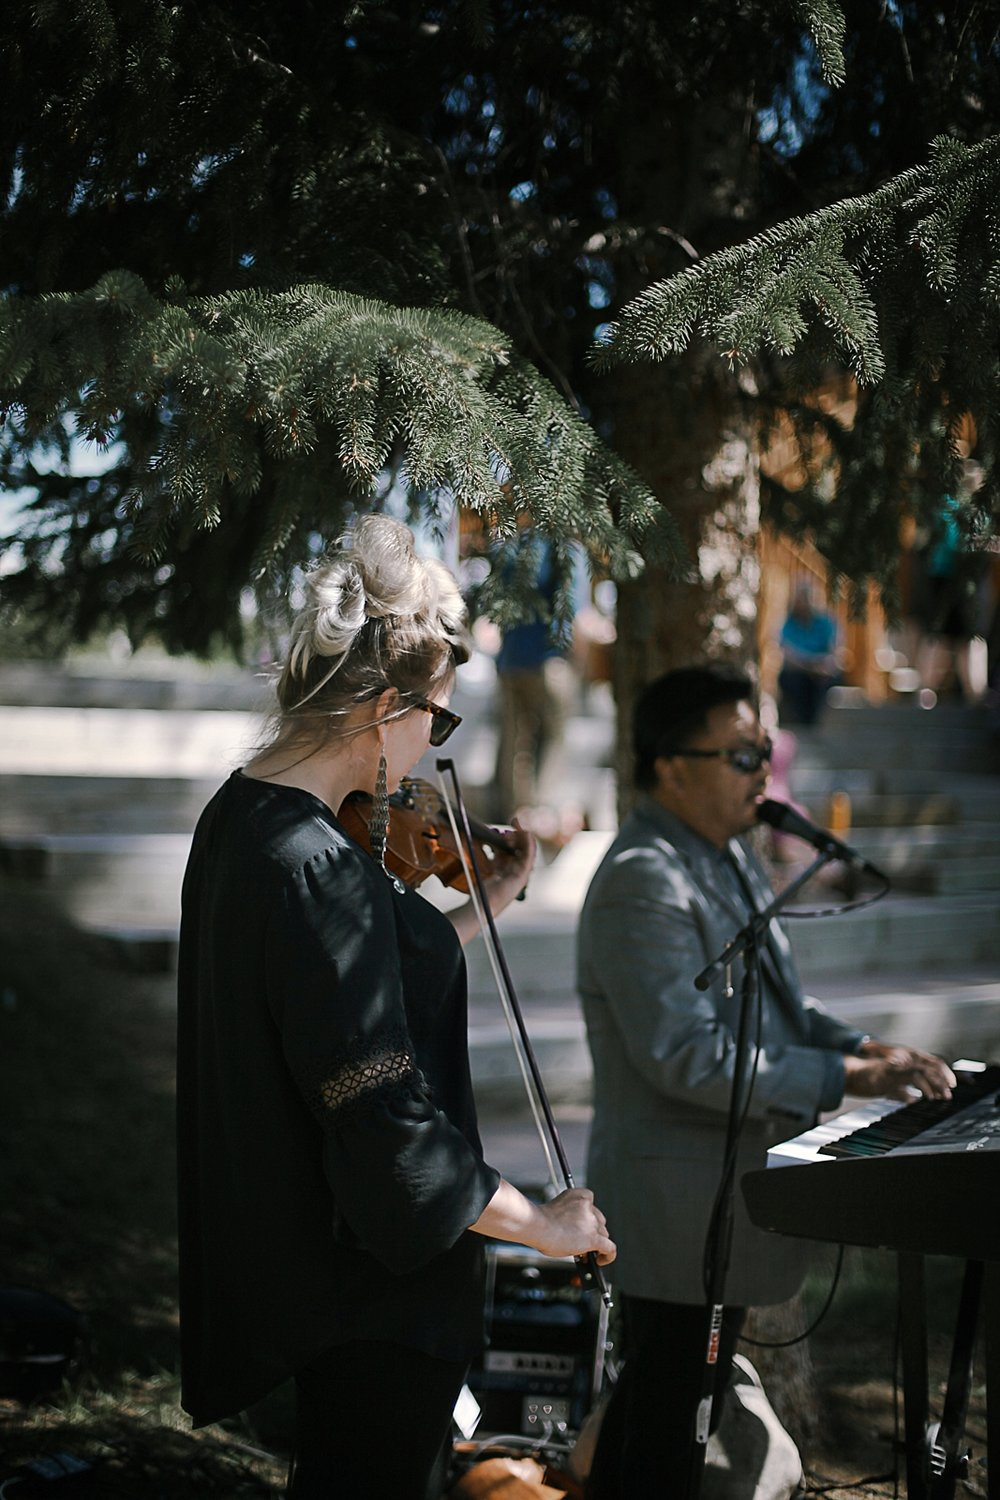 music for wedding procession at agape outpost, breckenridge colorado wedding, breckenridge colorado wedding photographer, the church at agape outpost wedding, agape outpost wedding photographer